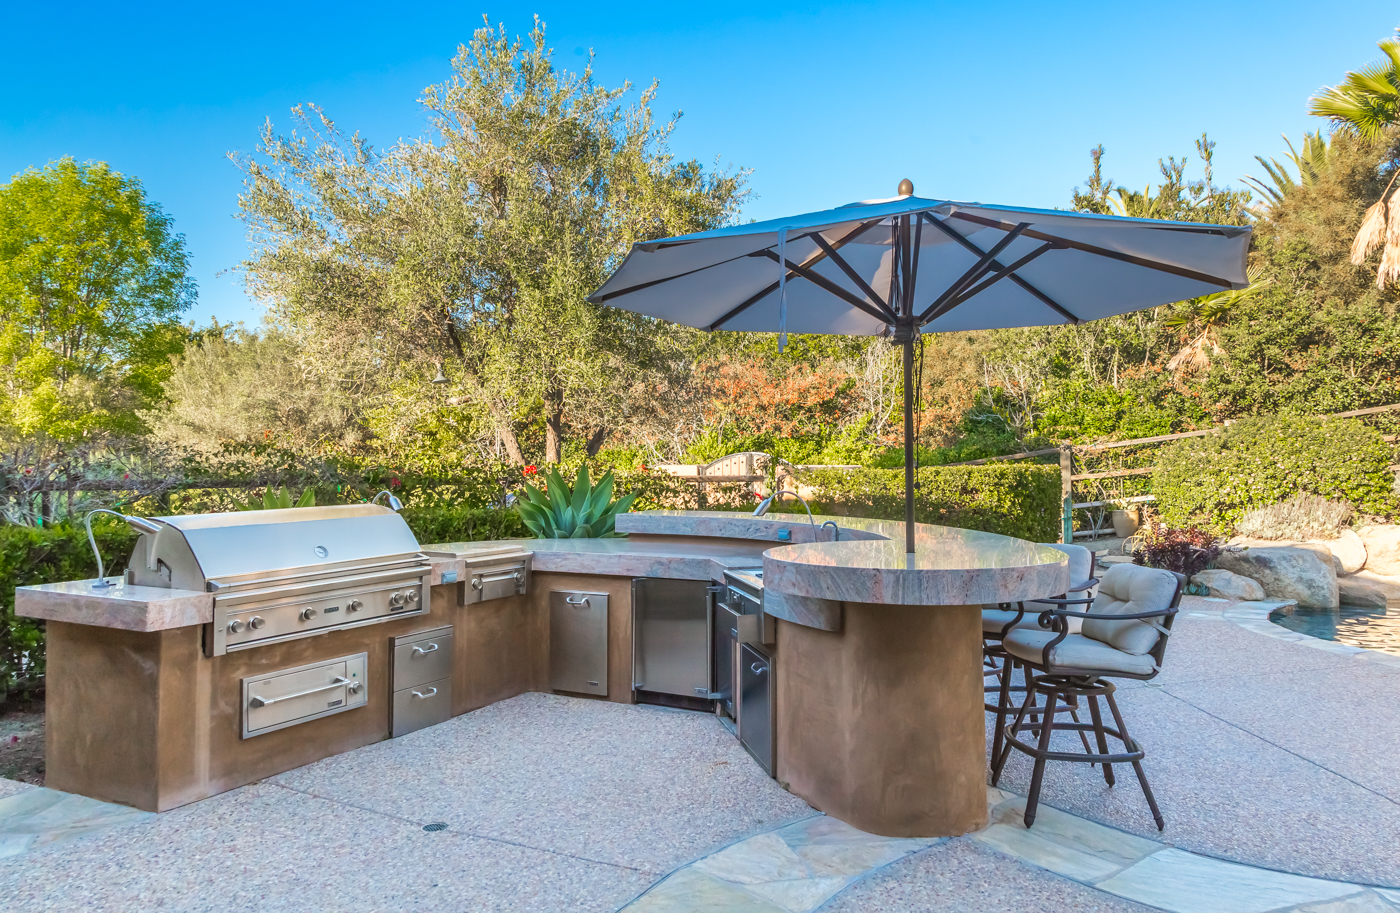 Sold 2017 Represented Buyer & Seller -  Rancho Santa Fe, CA 92067